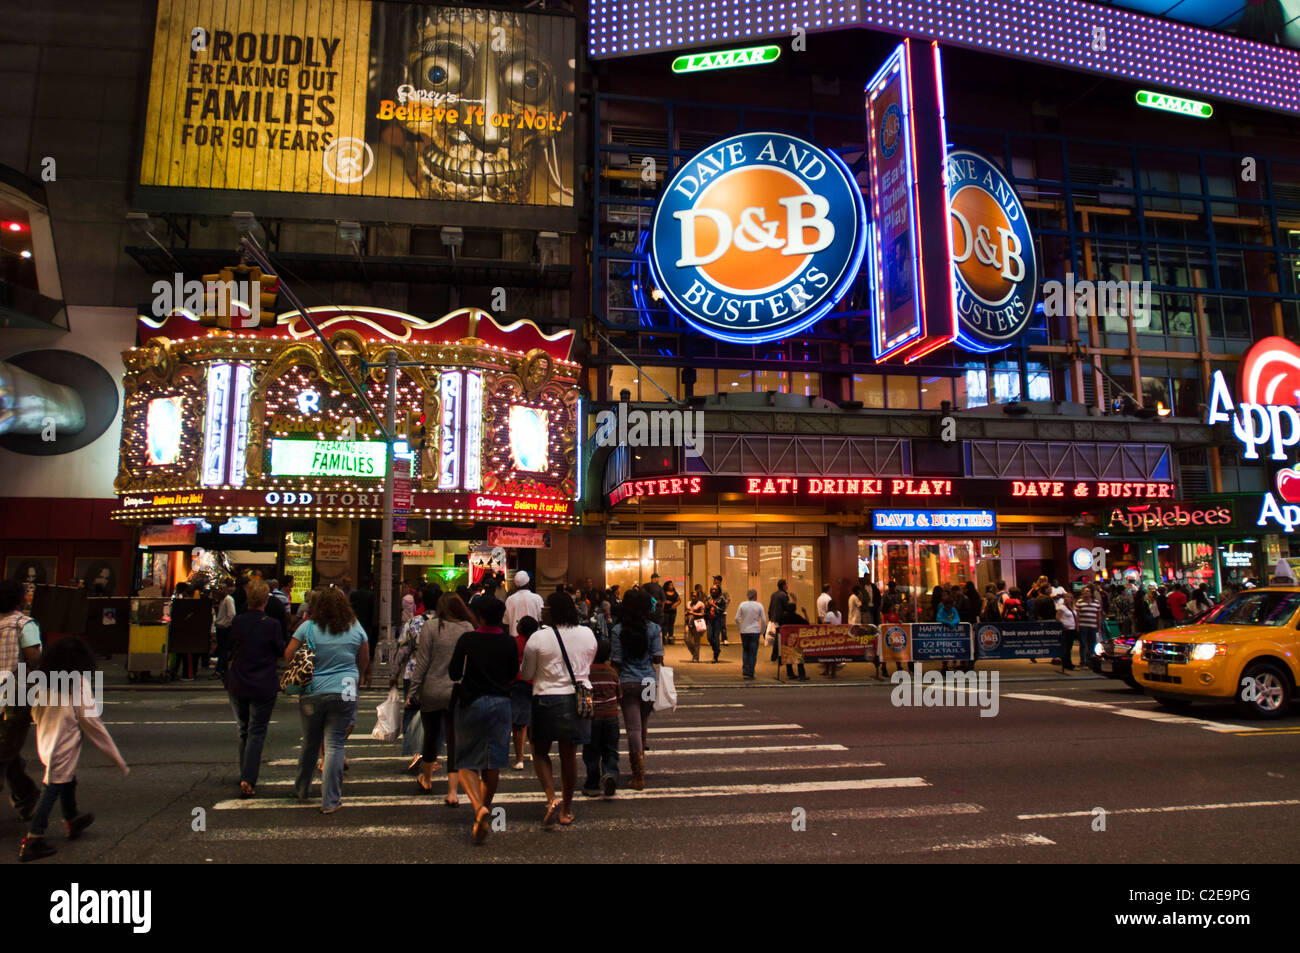 – A truly unique celebratory experience for all, Dave & Buster's will be a real blast this NYE in NYC! Dave and Buster's is a mammoth 31,sf multi-faceted entertainment complex like no other the city has ever seen, with enough fun and games to really get your 73%(22).